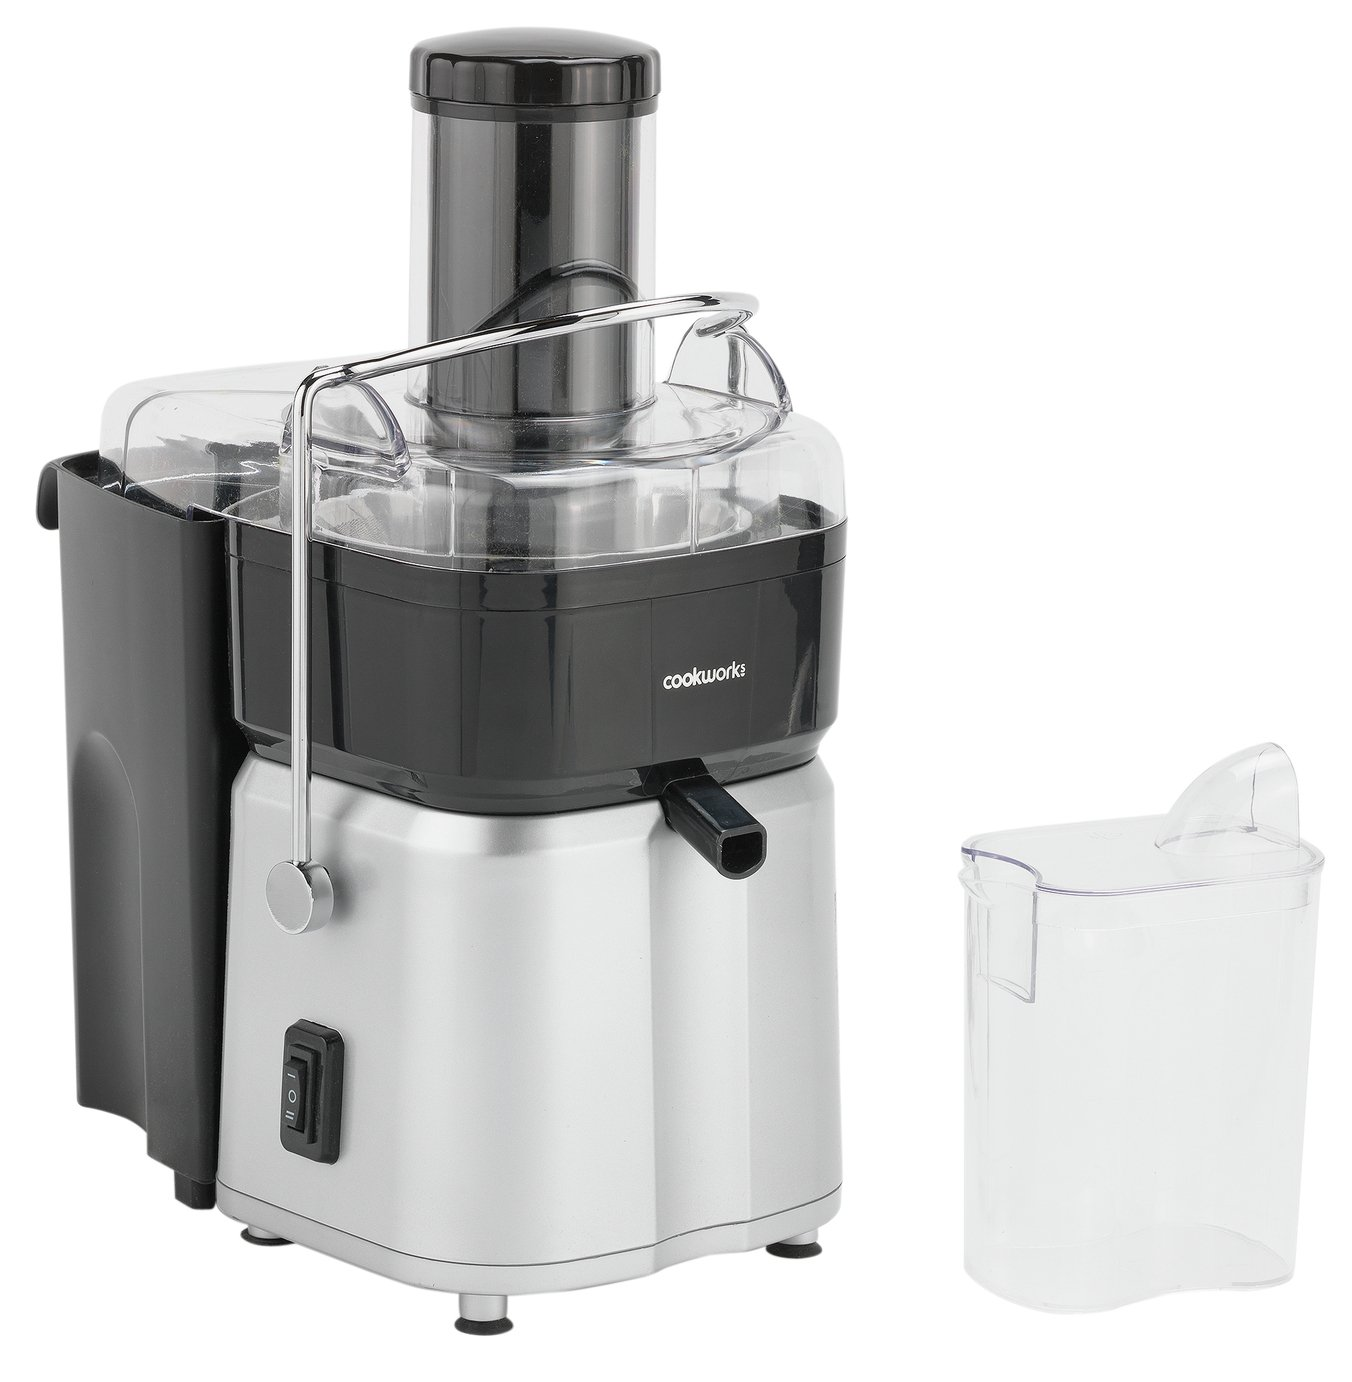 Cookworks Whole Fruit Juicer - St/Steel